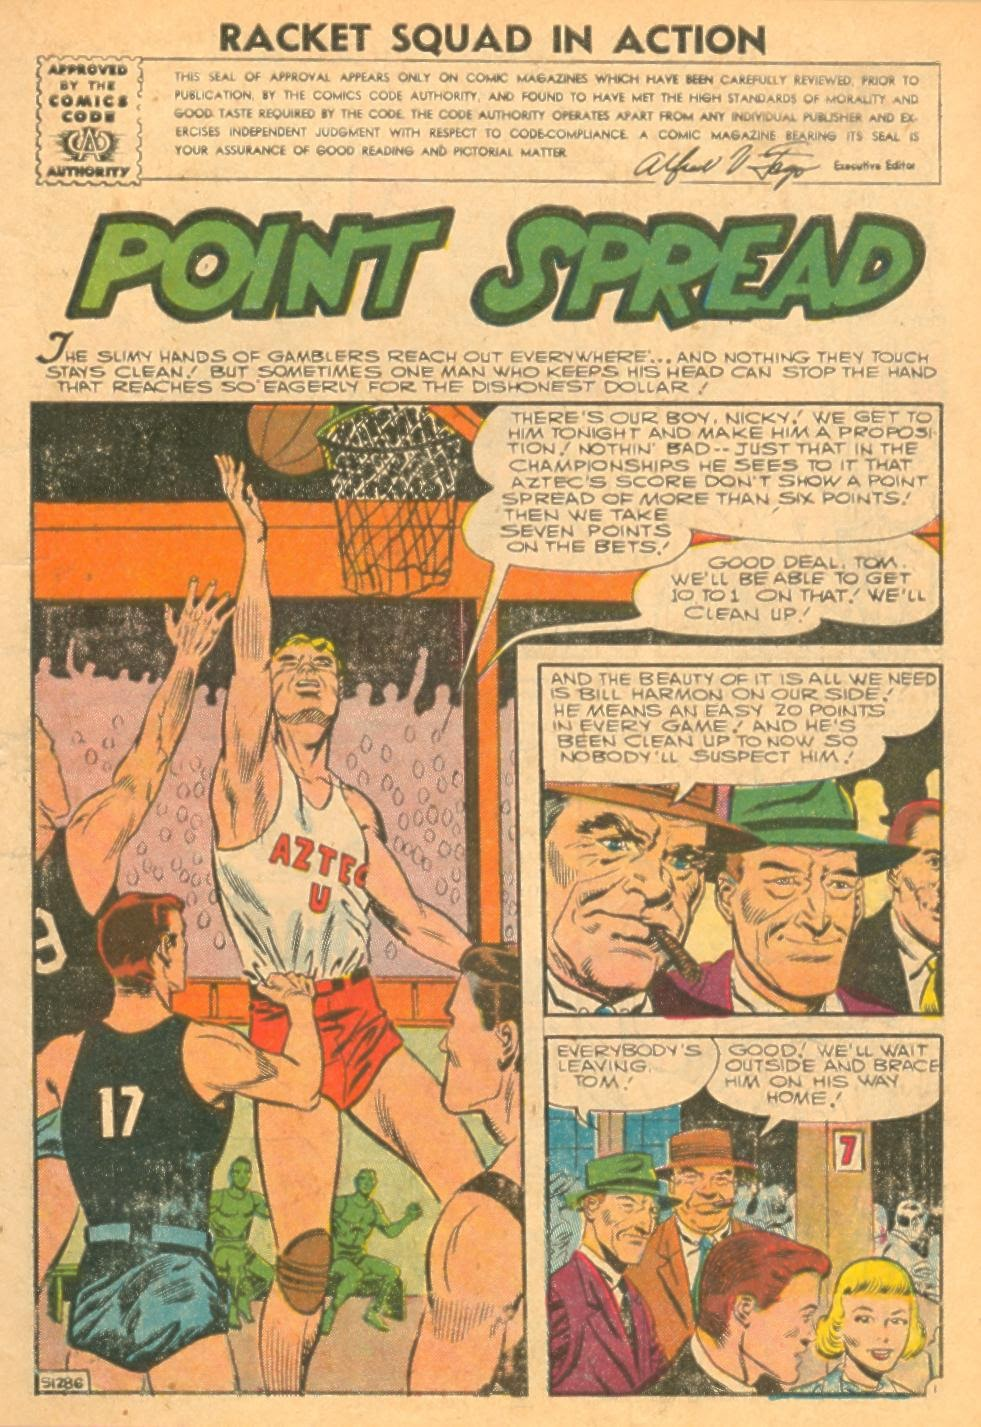 Read online Racket Squad in Action comic -  Issue #24 - 3